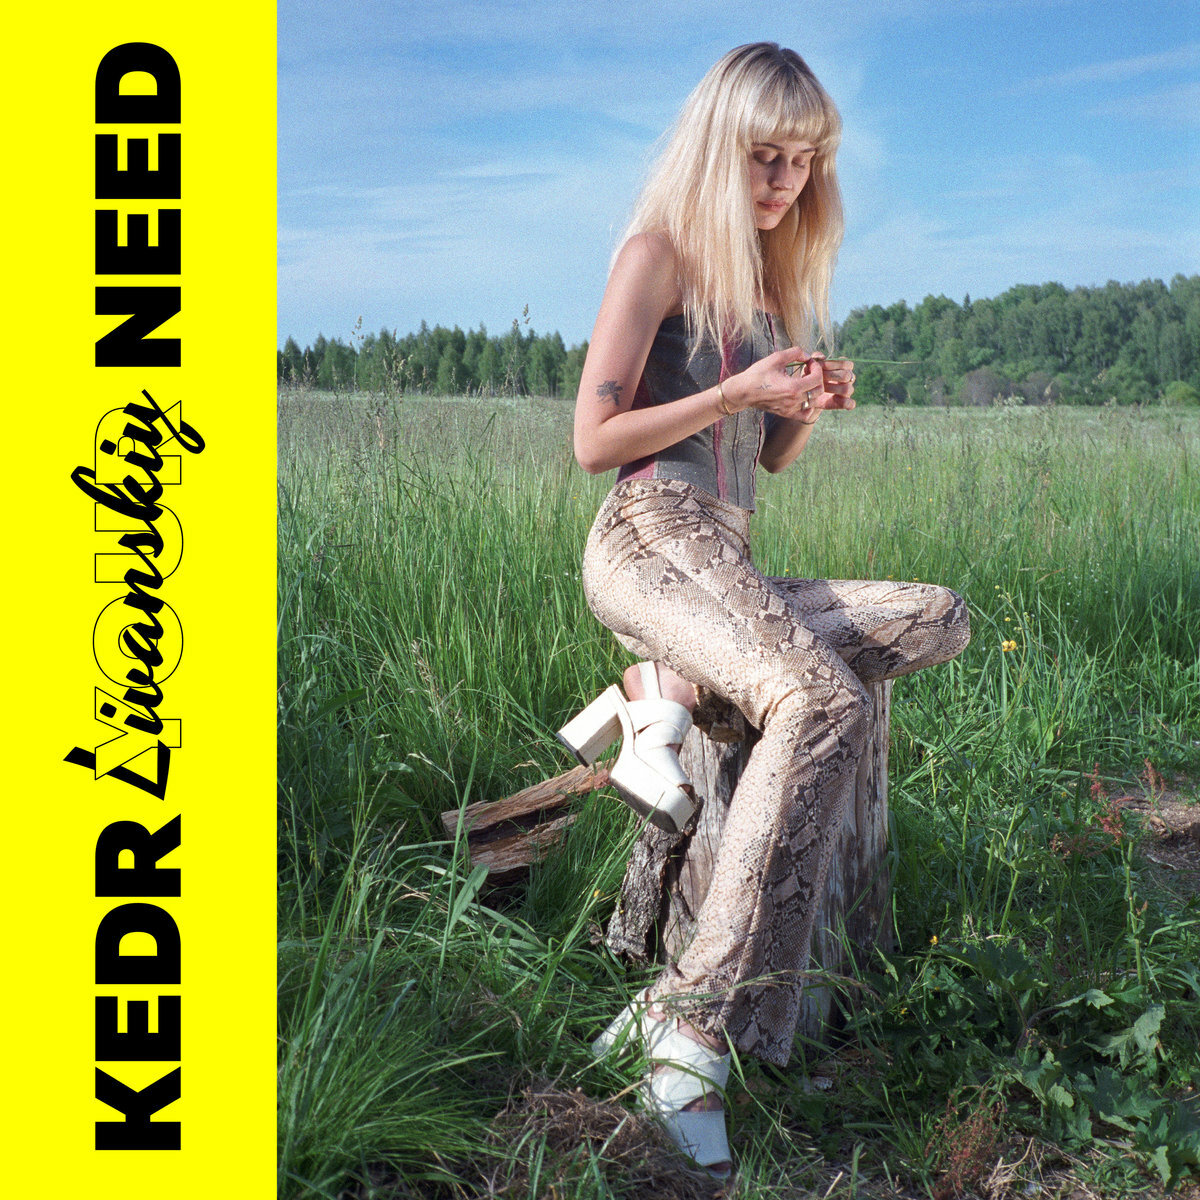 Kedr Livanskiy / Your Need(Cassette)